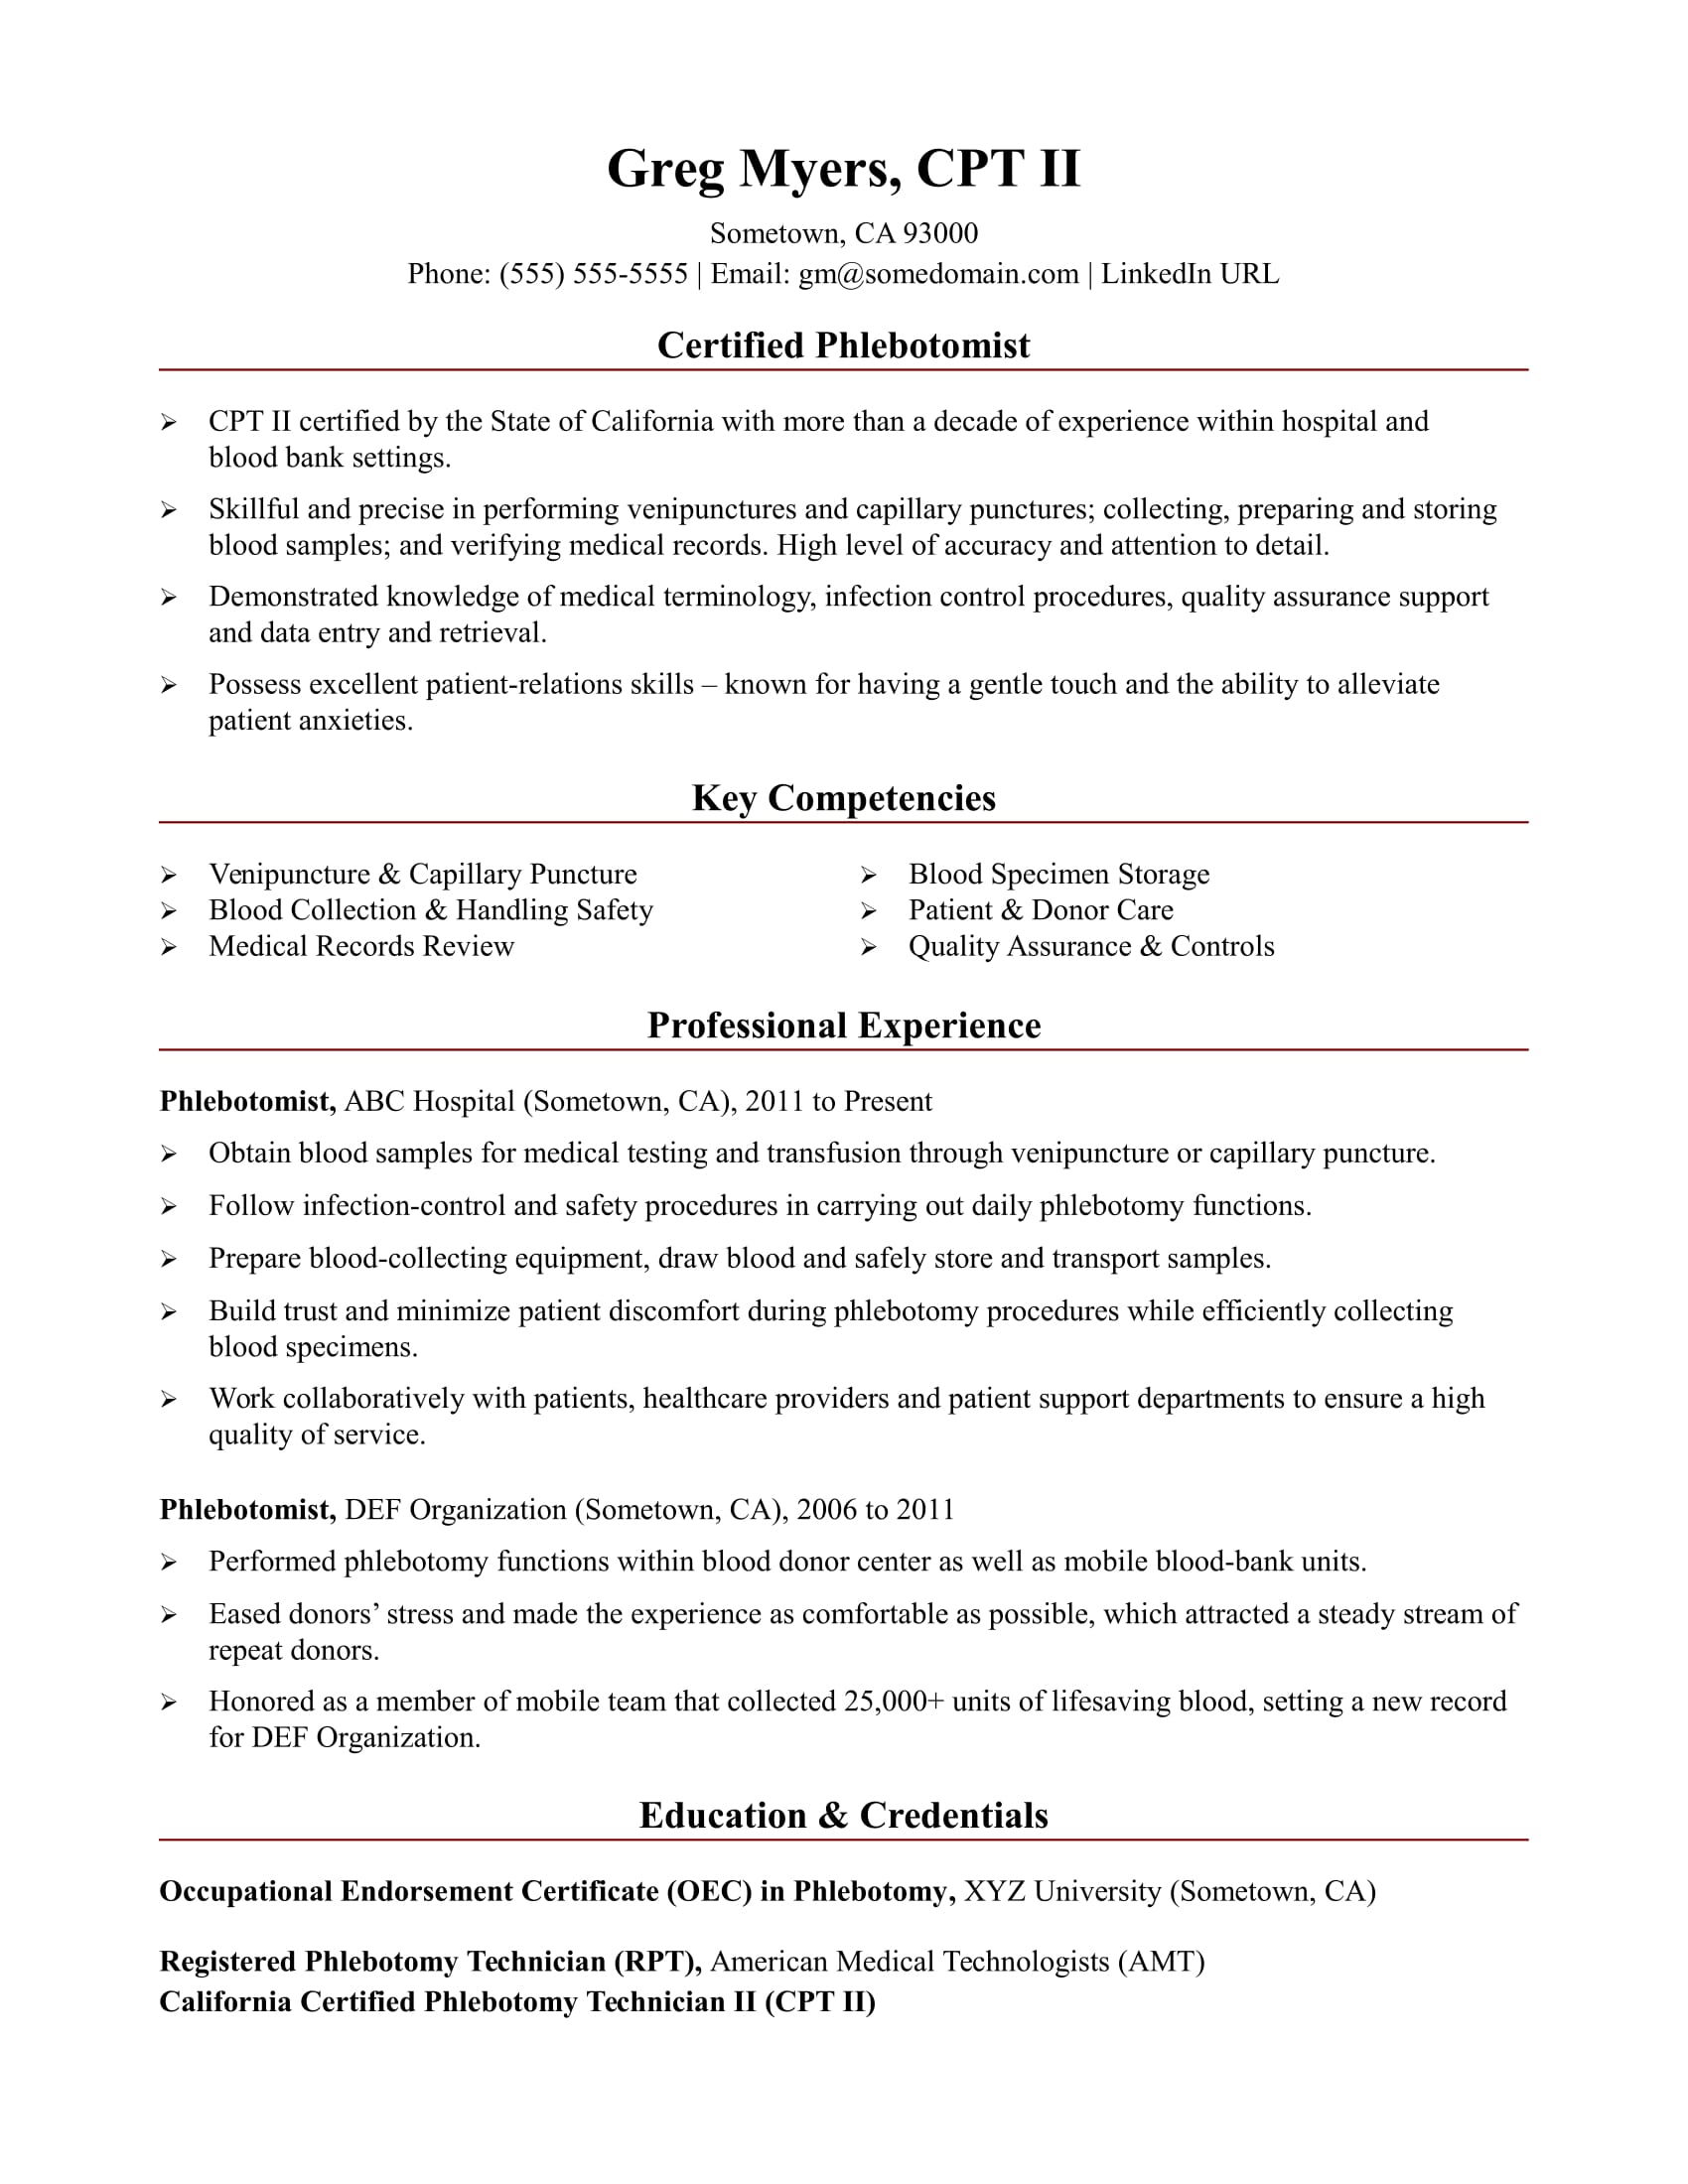 Superb Sample Resume For A Phlebotomist  Top Sample Resumes